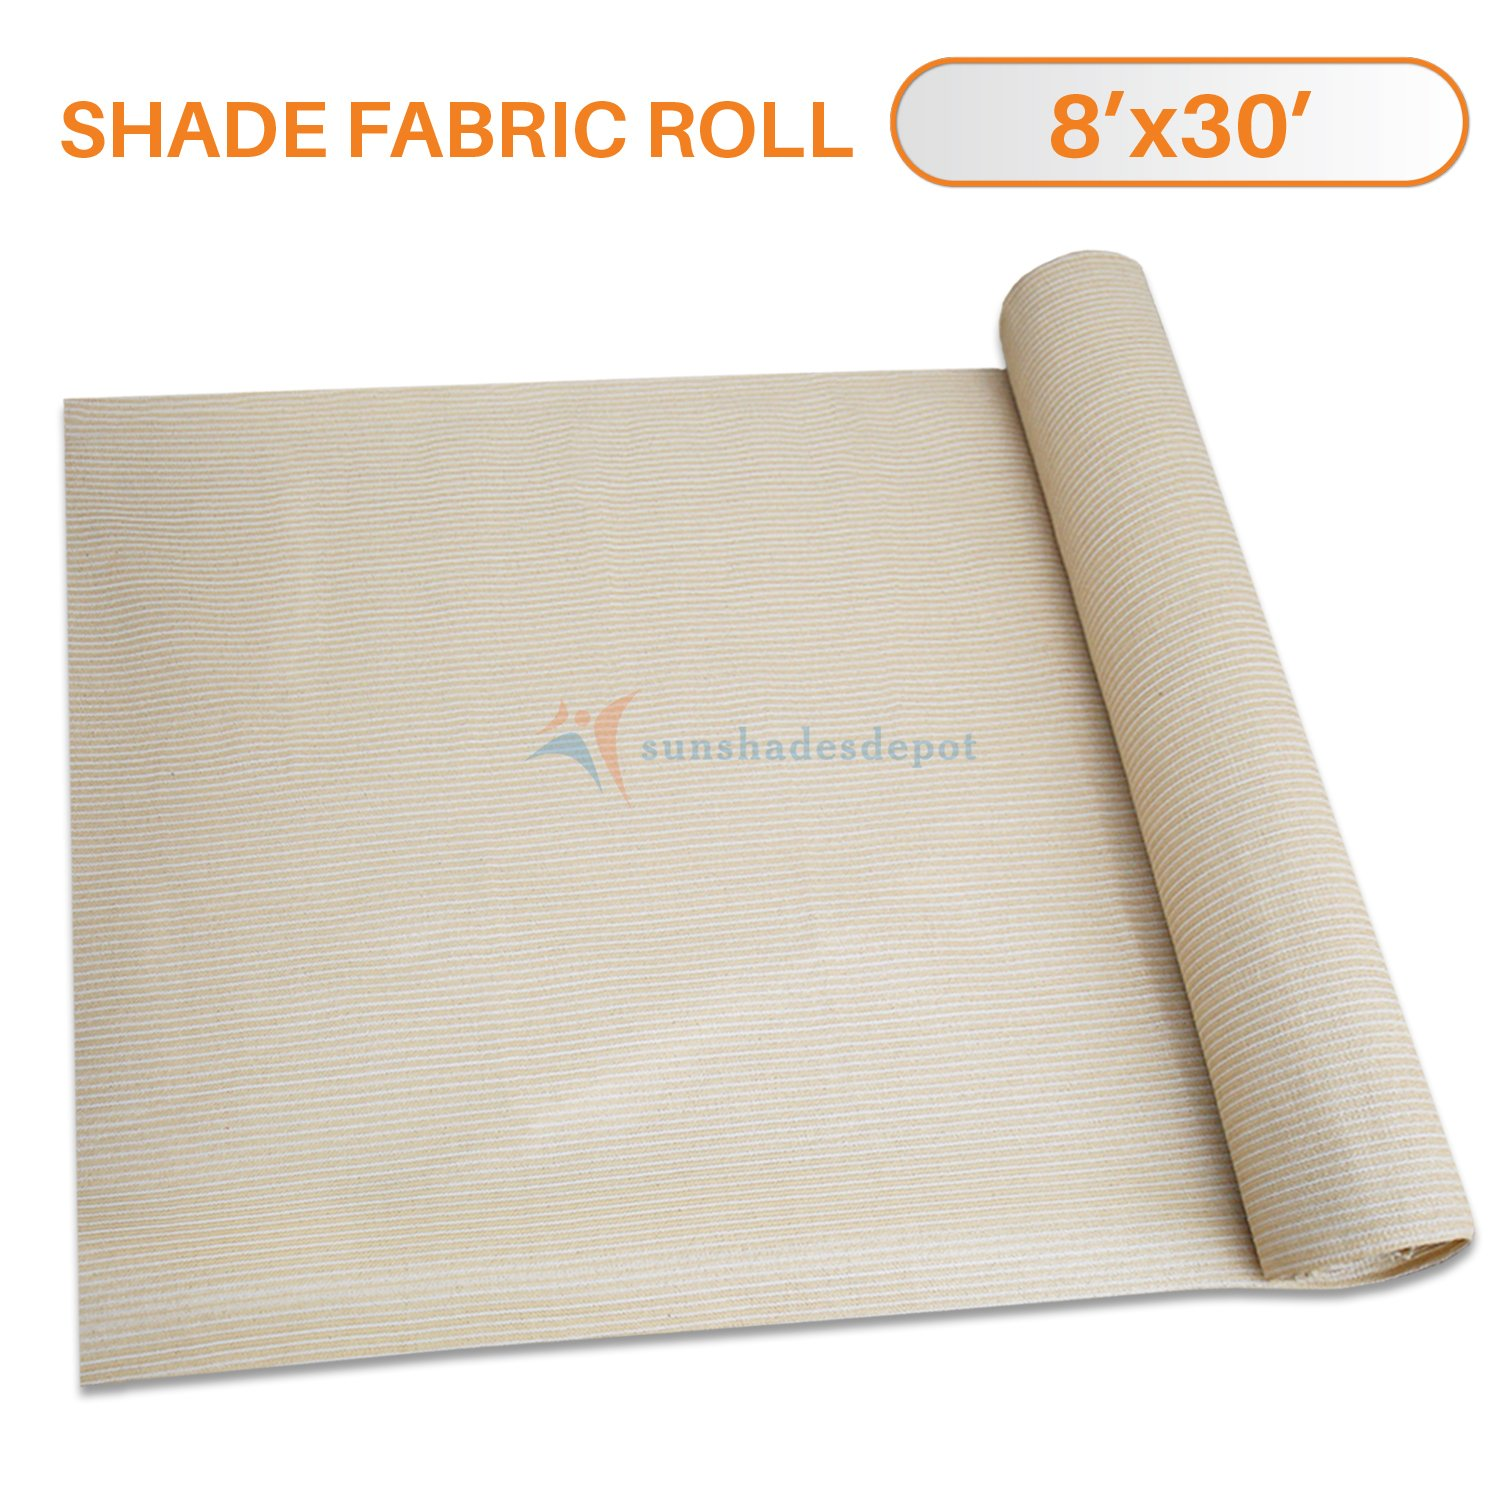 Sunshades Depot 8' x 30' Shade Cloth 180 GSM HDPE Beige Fabric Roll Up to 95% Blockage UV Resistant Mesh Net